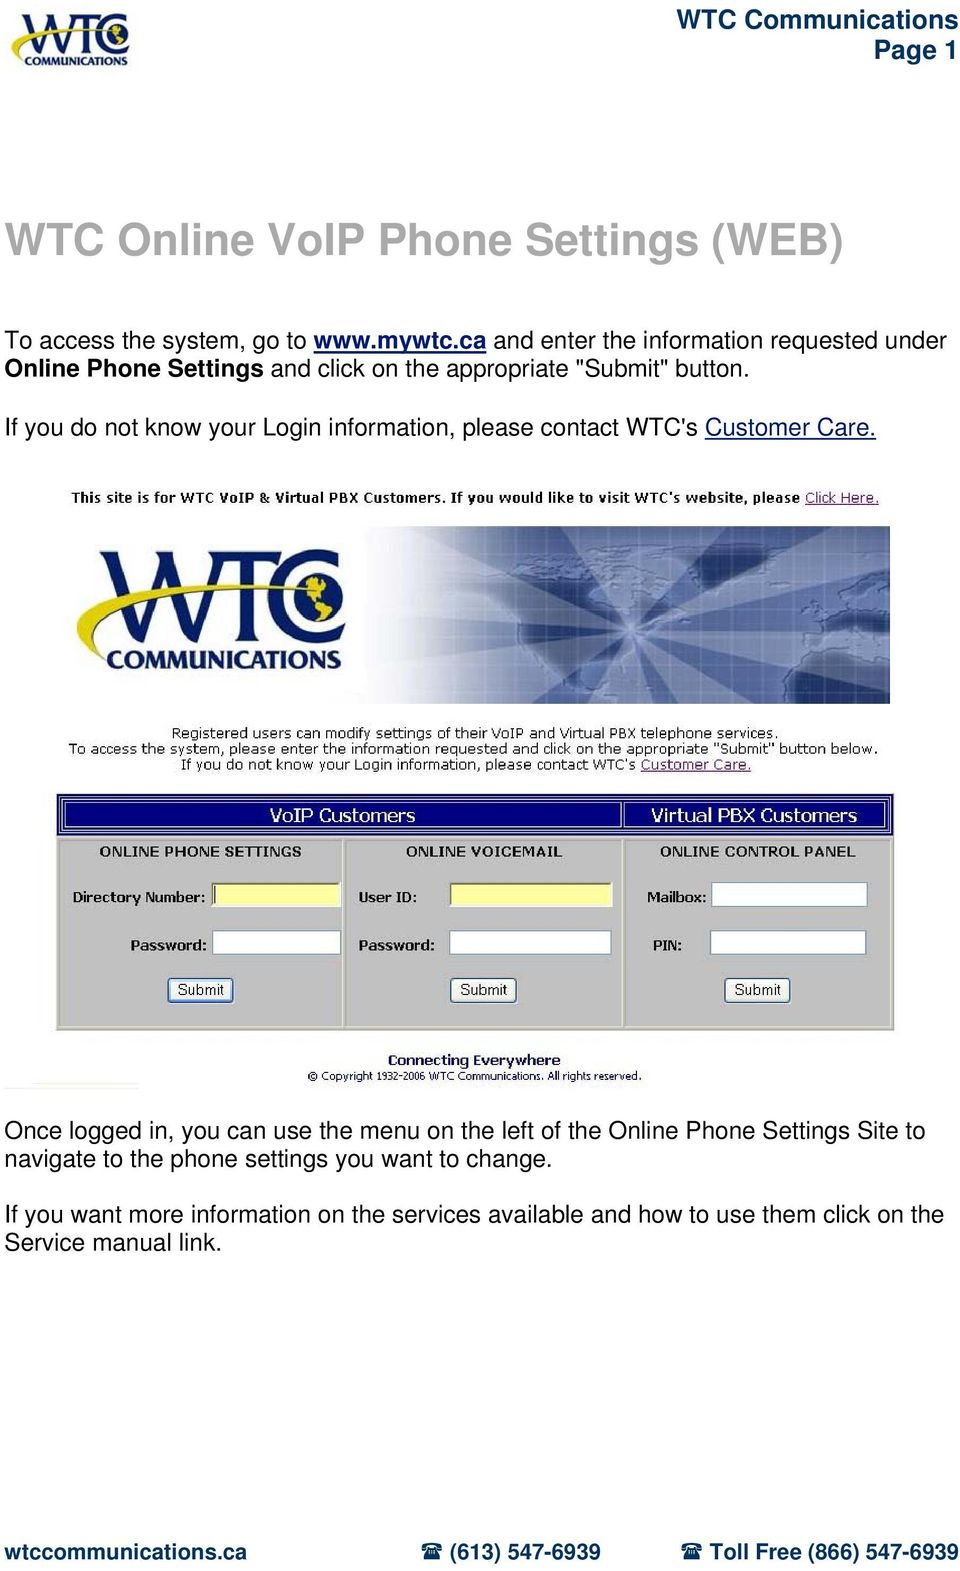 If you do not know your Login information, please contact WTC's Customer Care.